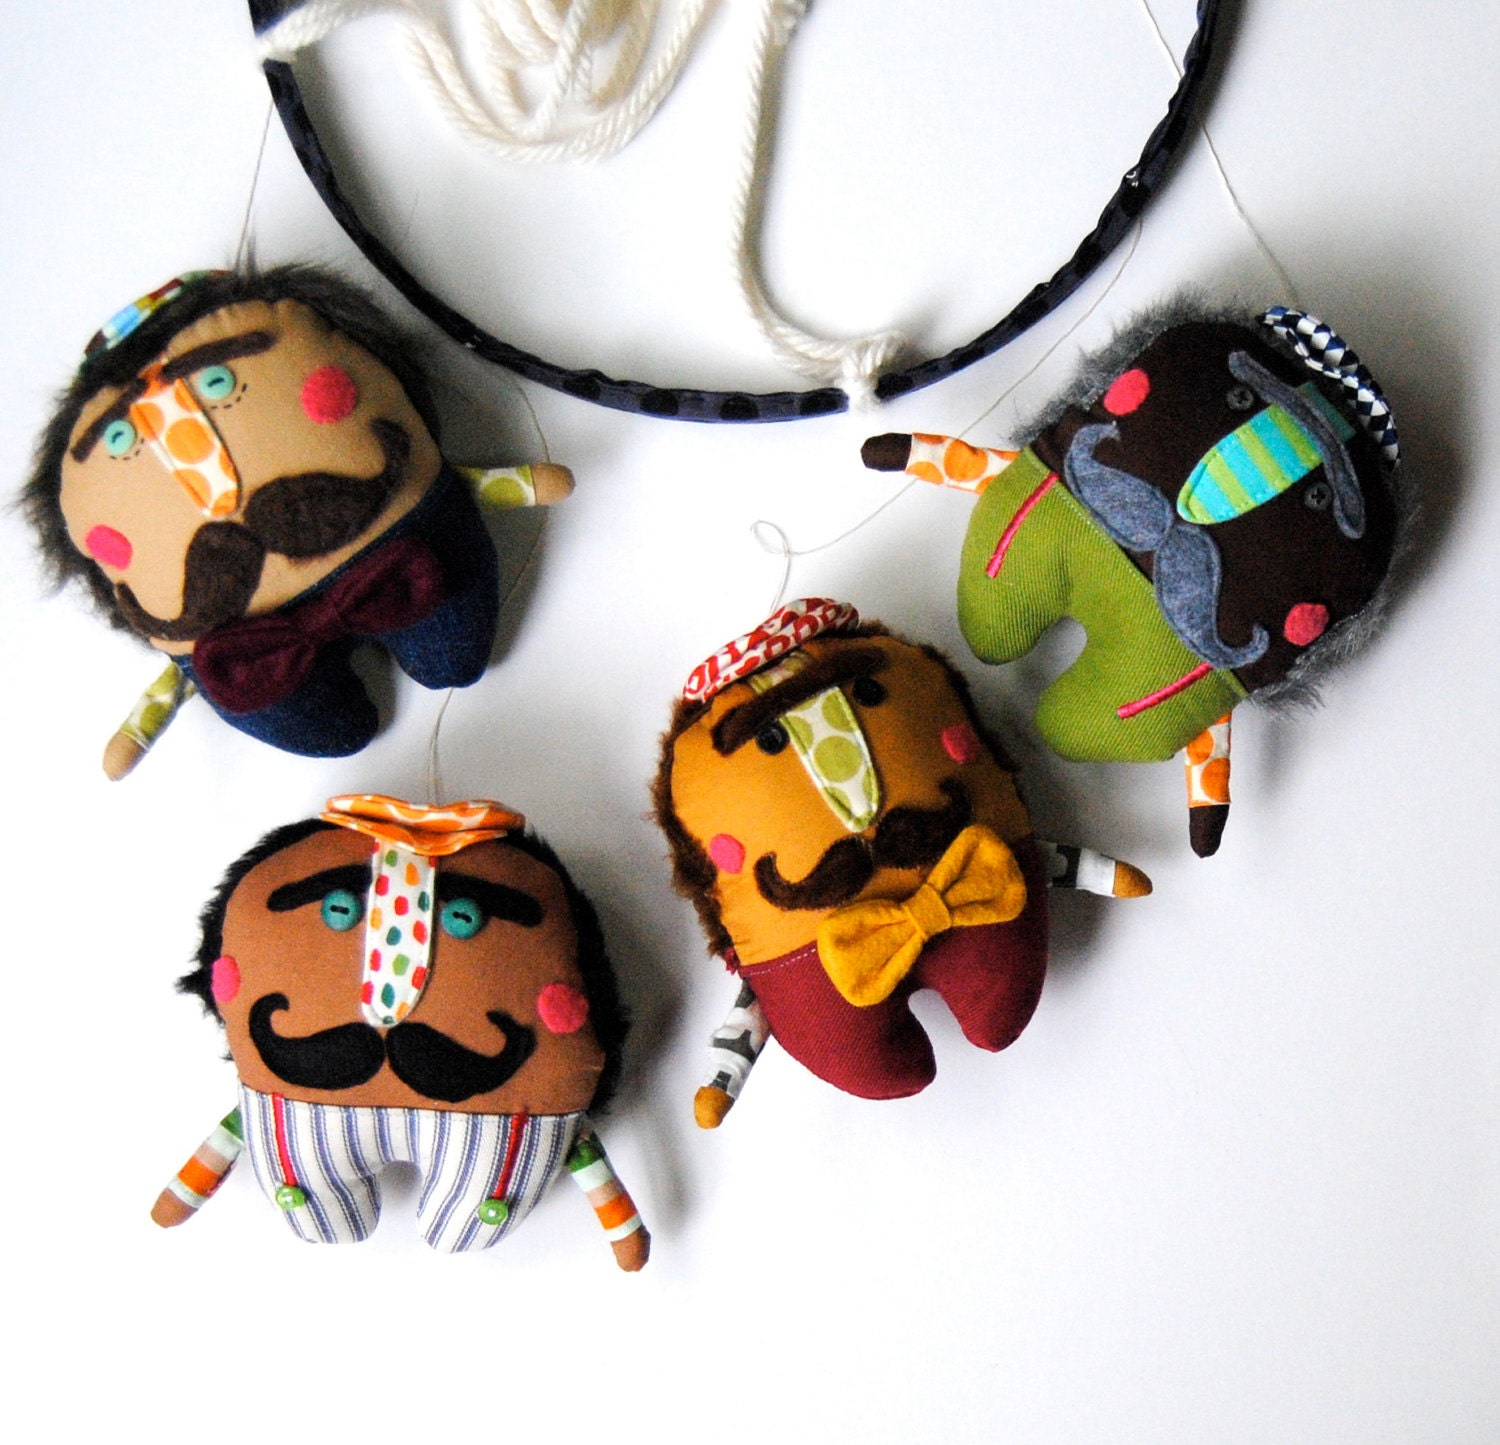 Baby Mobile --- A Mustachioed Mobile of Dapper Men for Babies ---Made to Order